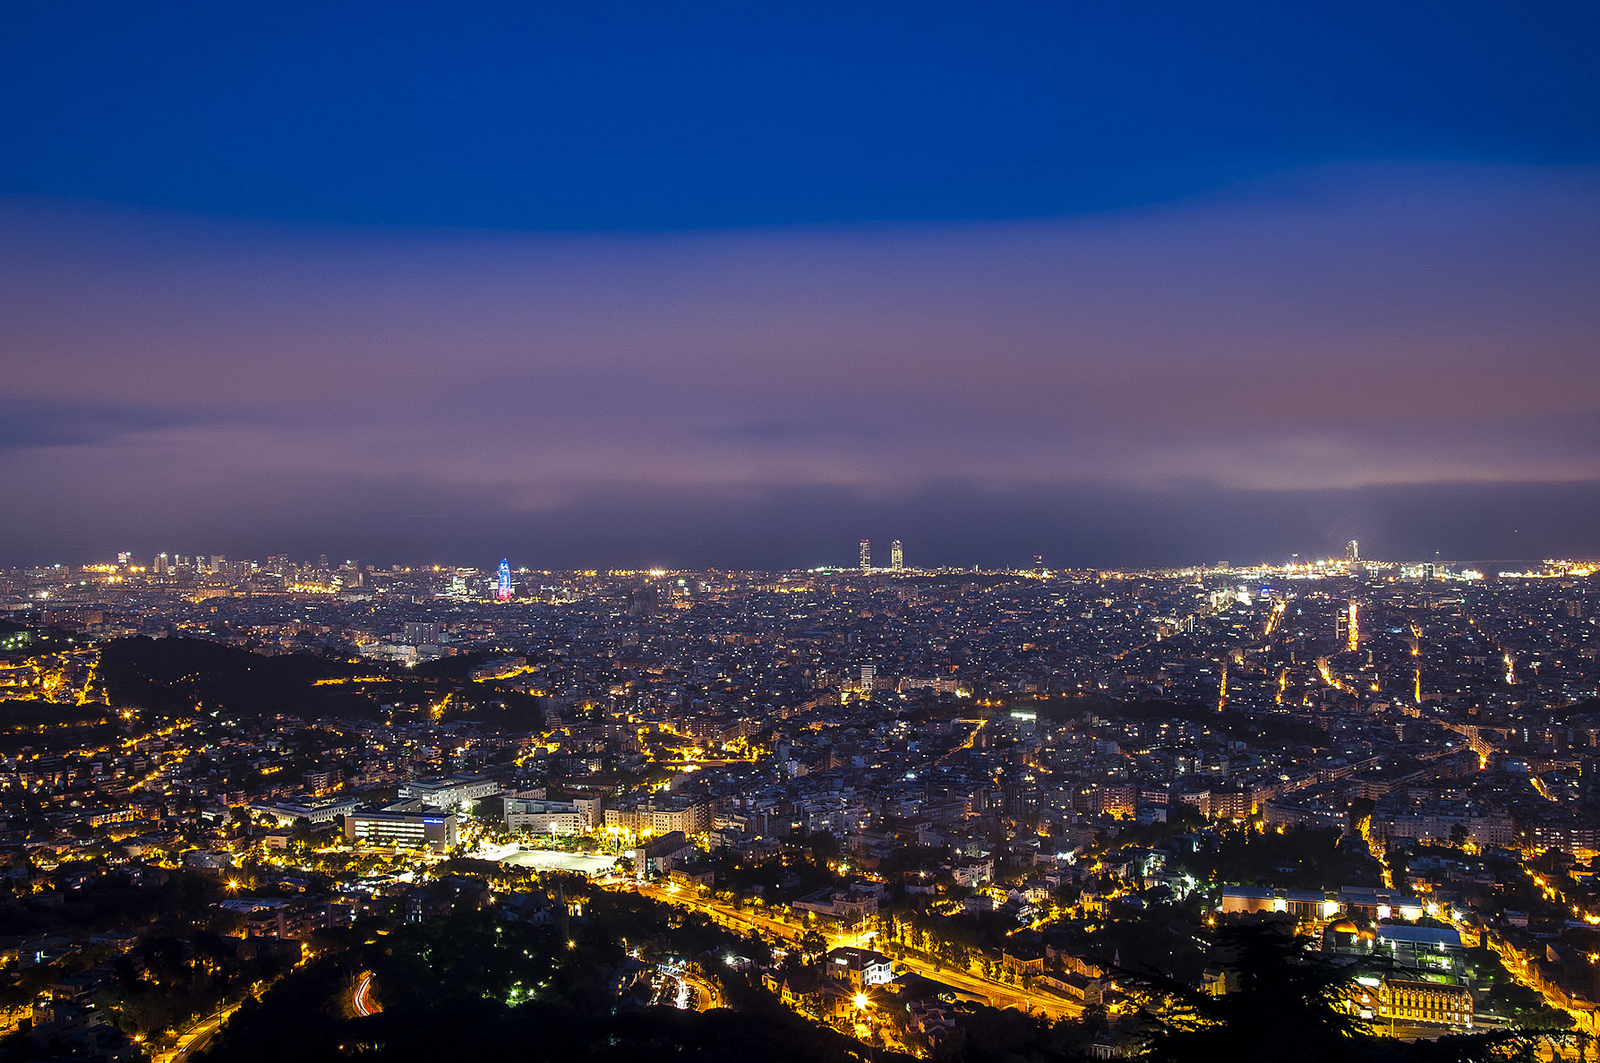 When in Barcelona, dine under the stars at Fabra Observatory